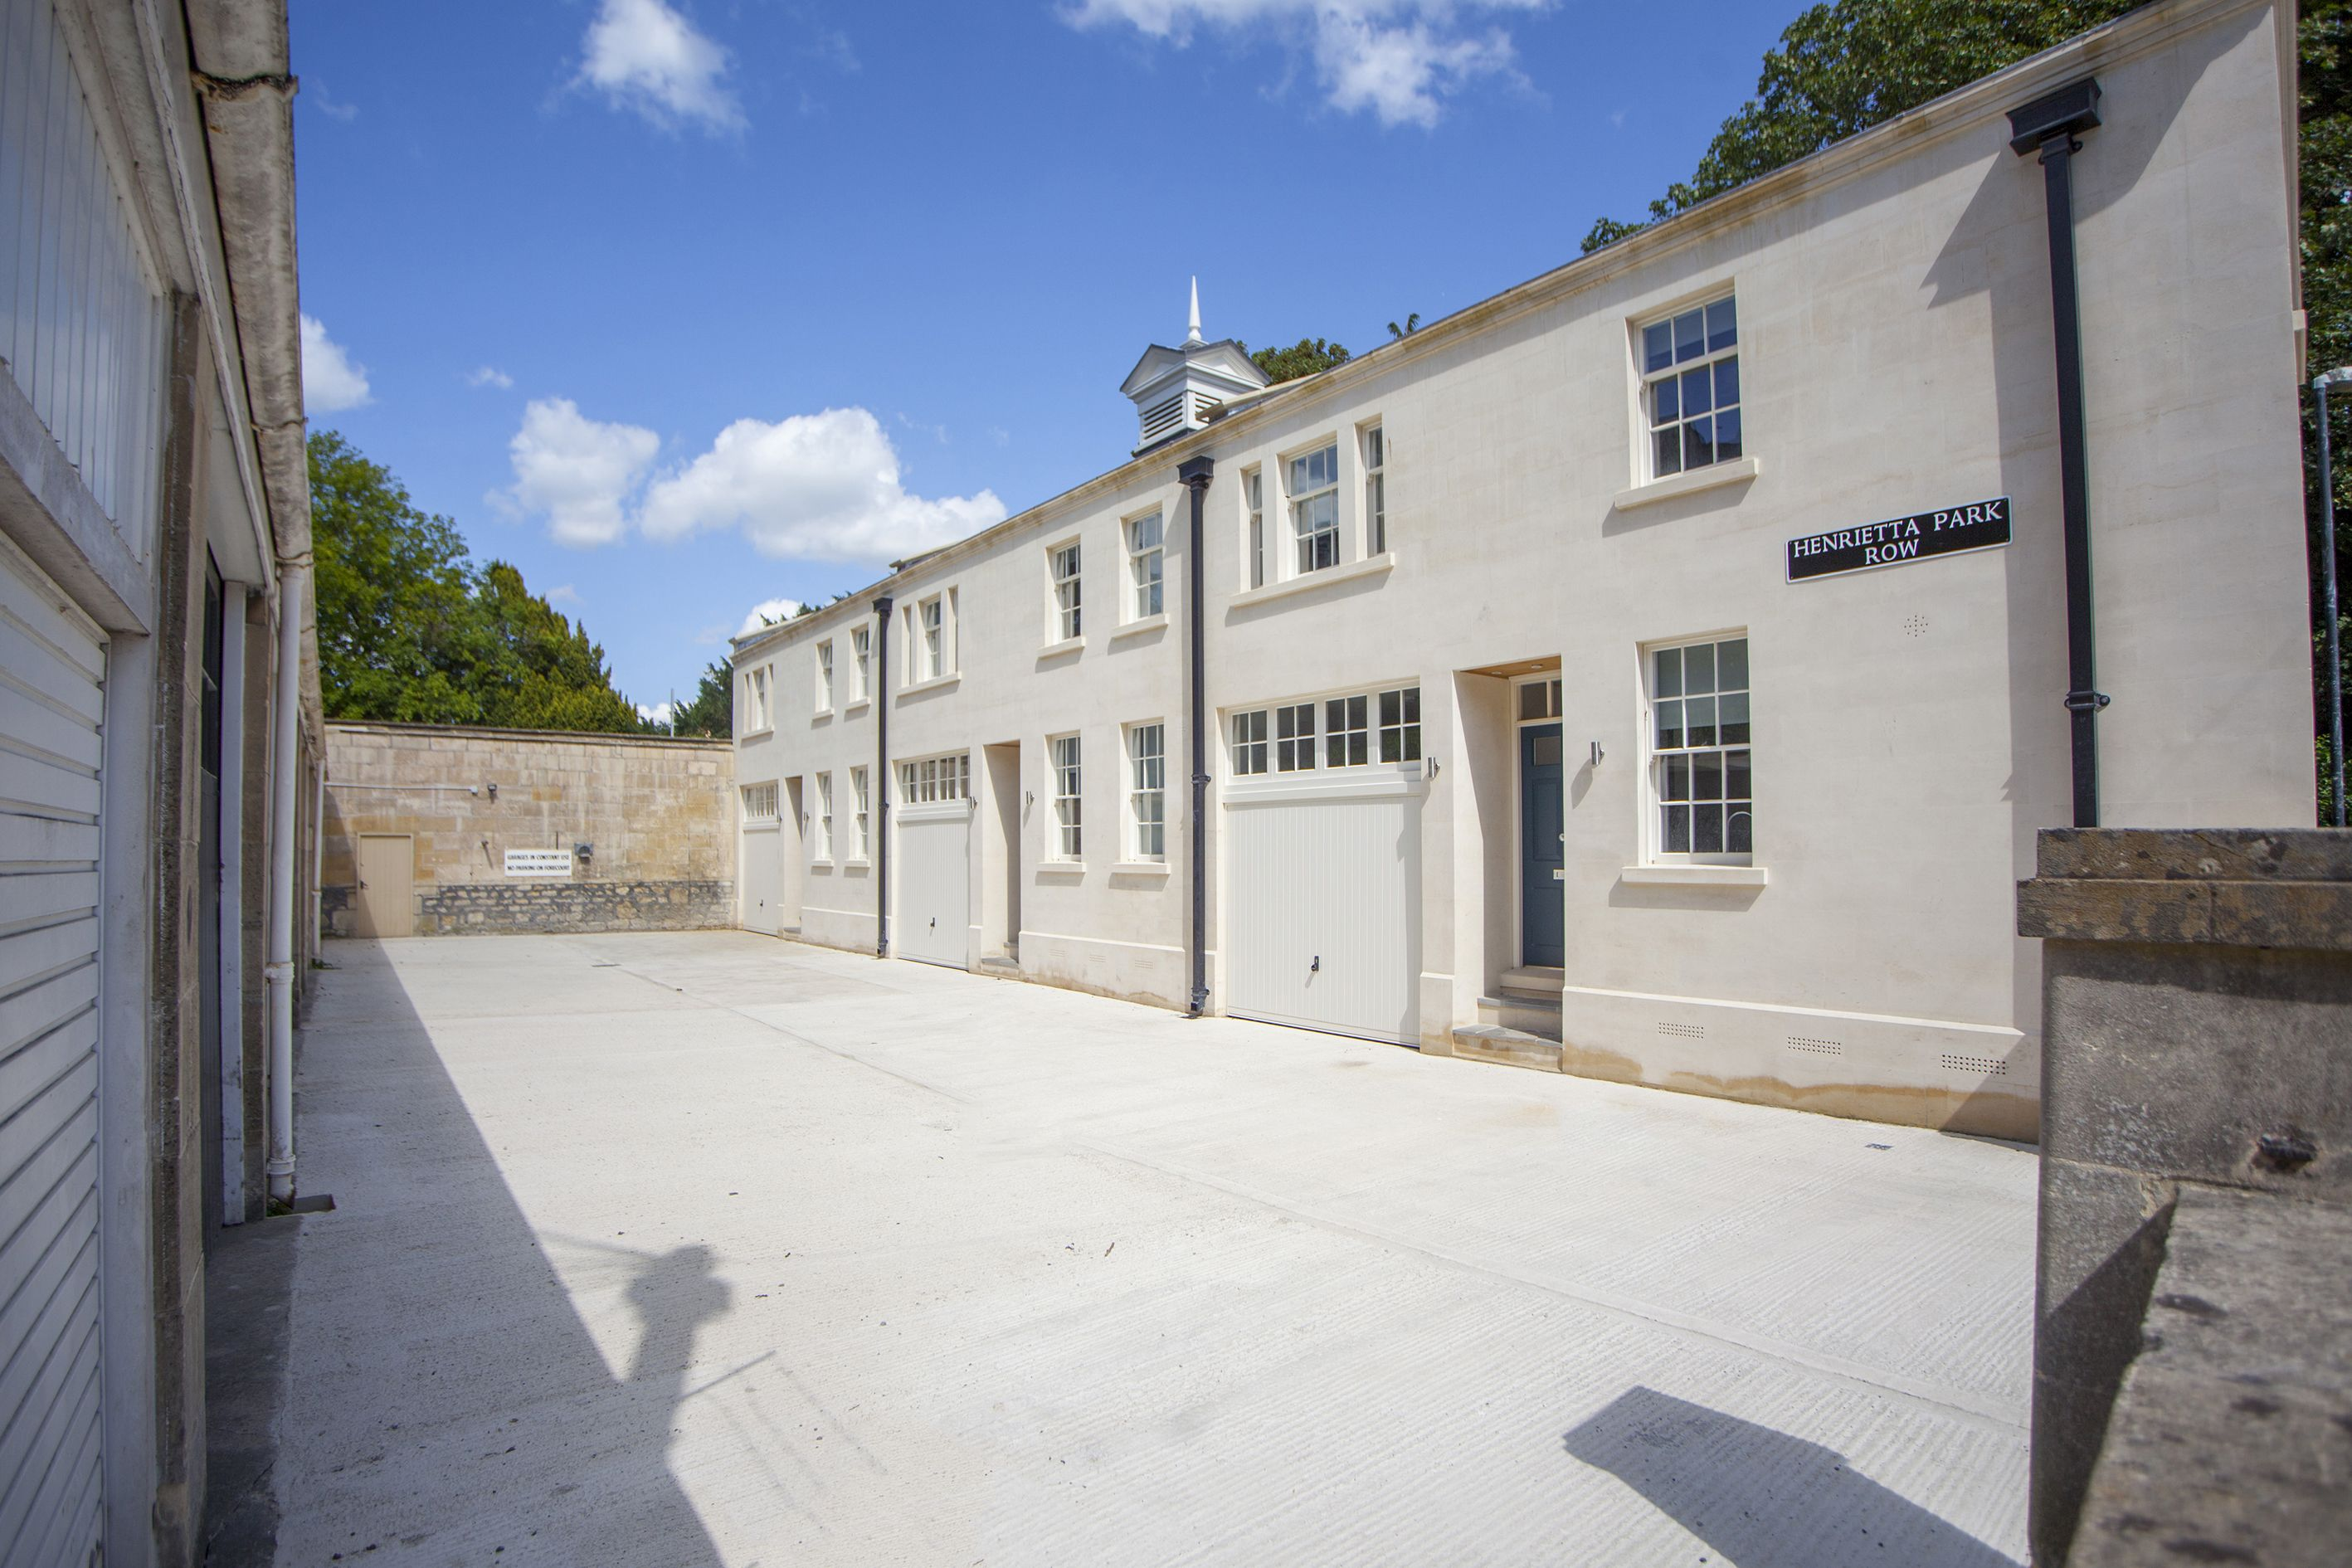 Park Row Mews house with garage parking